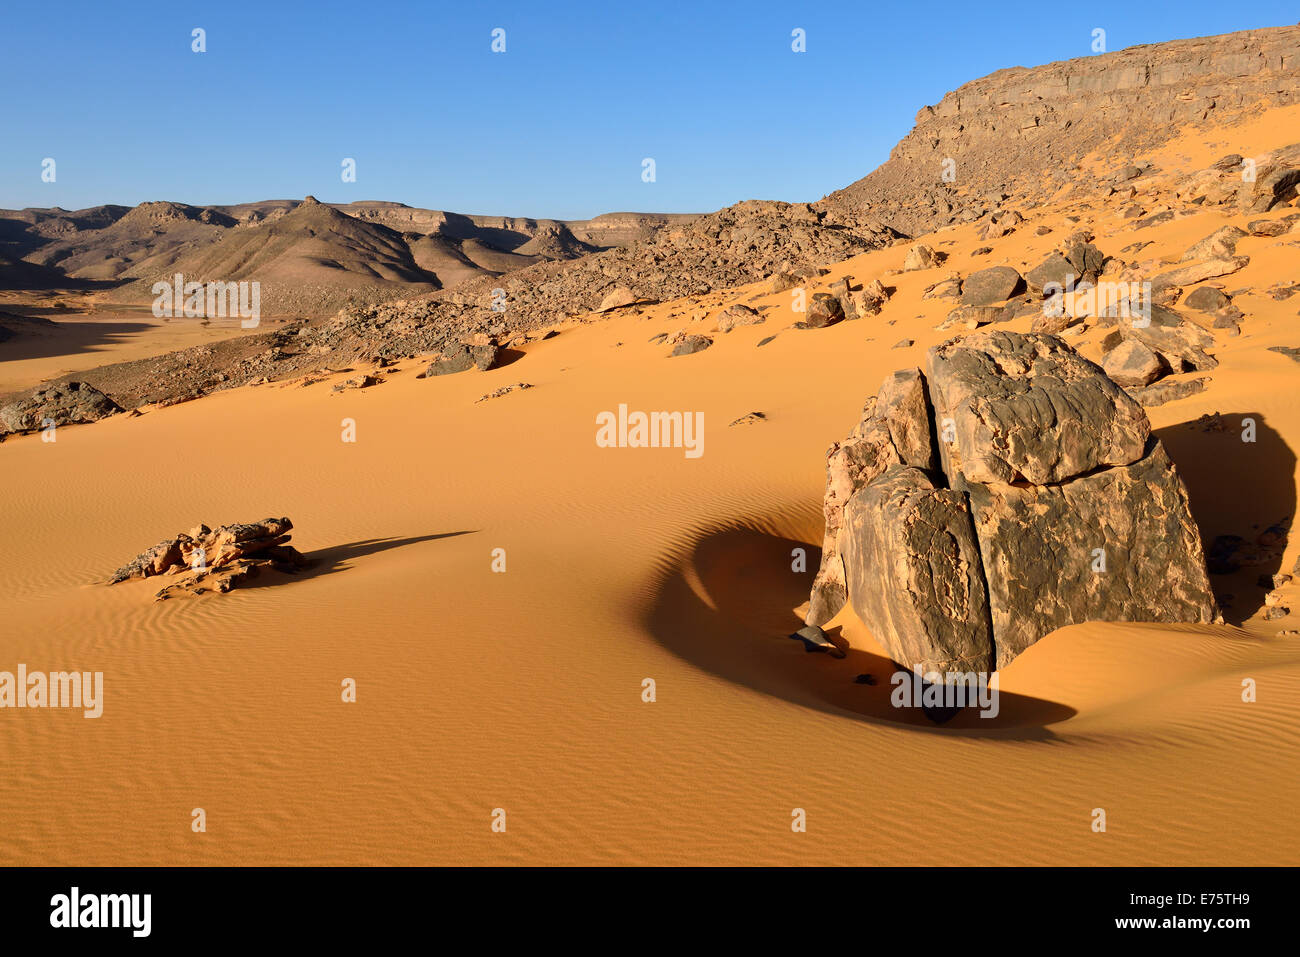 Western escarpment of Tadrart plateau, Tassili n'Ajjer National Park, Unesco World Heritage Site, Algeria, Sahara - Stock Image